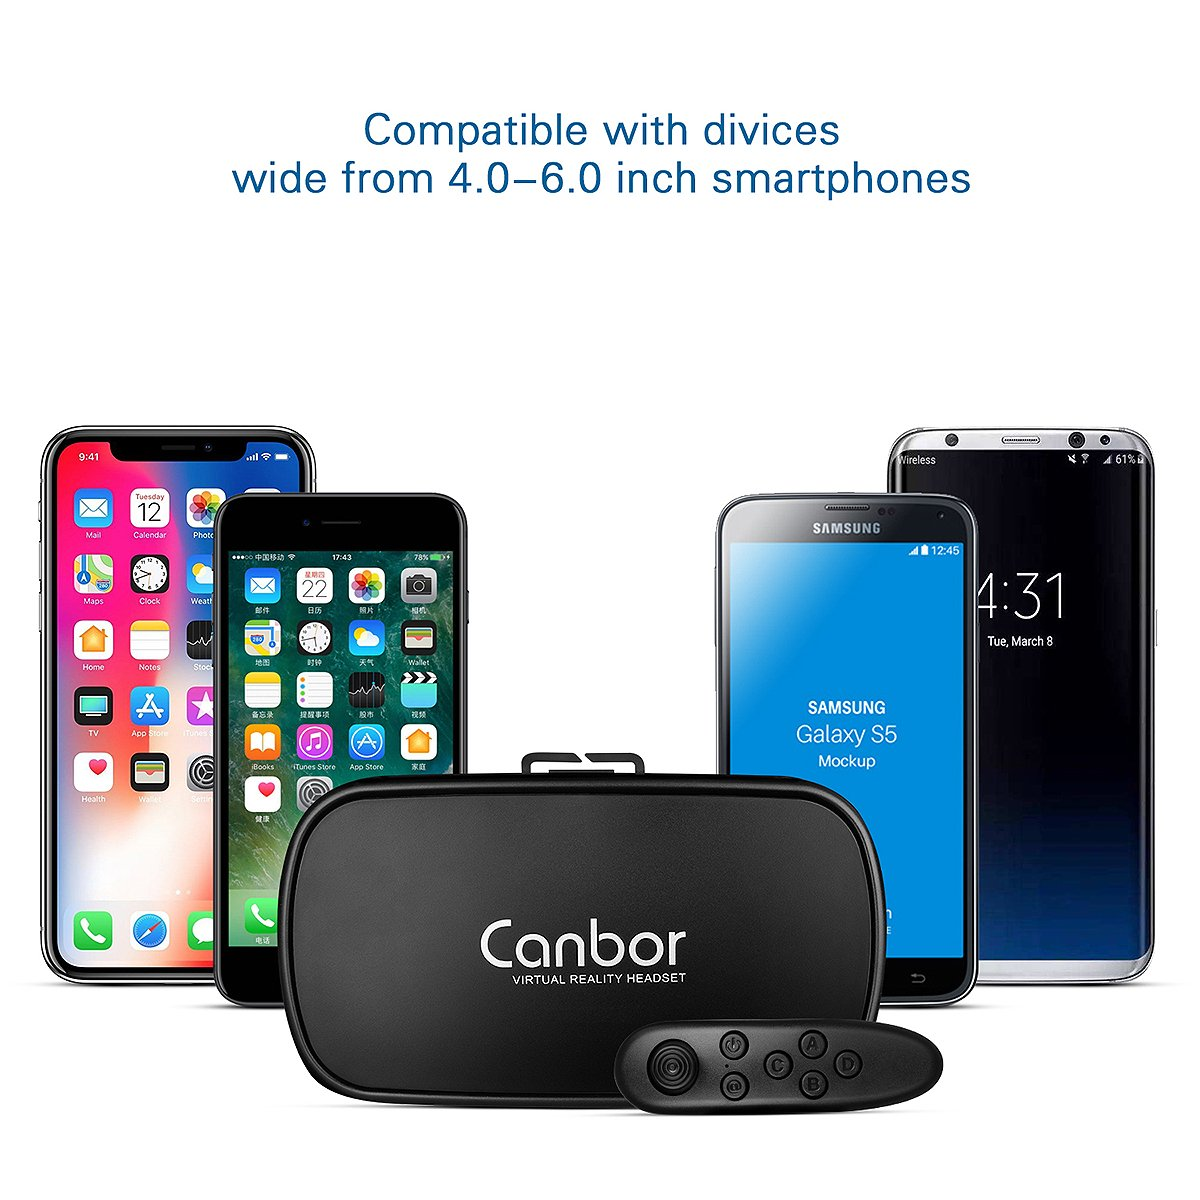 VR Headset, Canbor VR Goggles Virtual Reality Headset VR Glasses for 3D Video Movies Games for Apple iPhone, Samsung Huwei HTC More Smartphones by Canbor (Image #3)